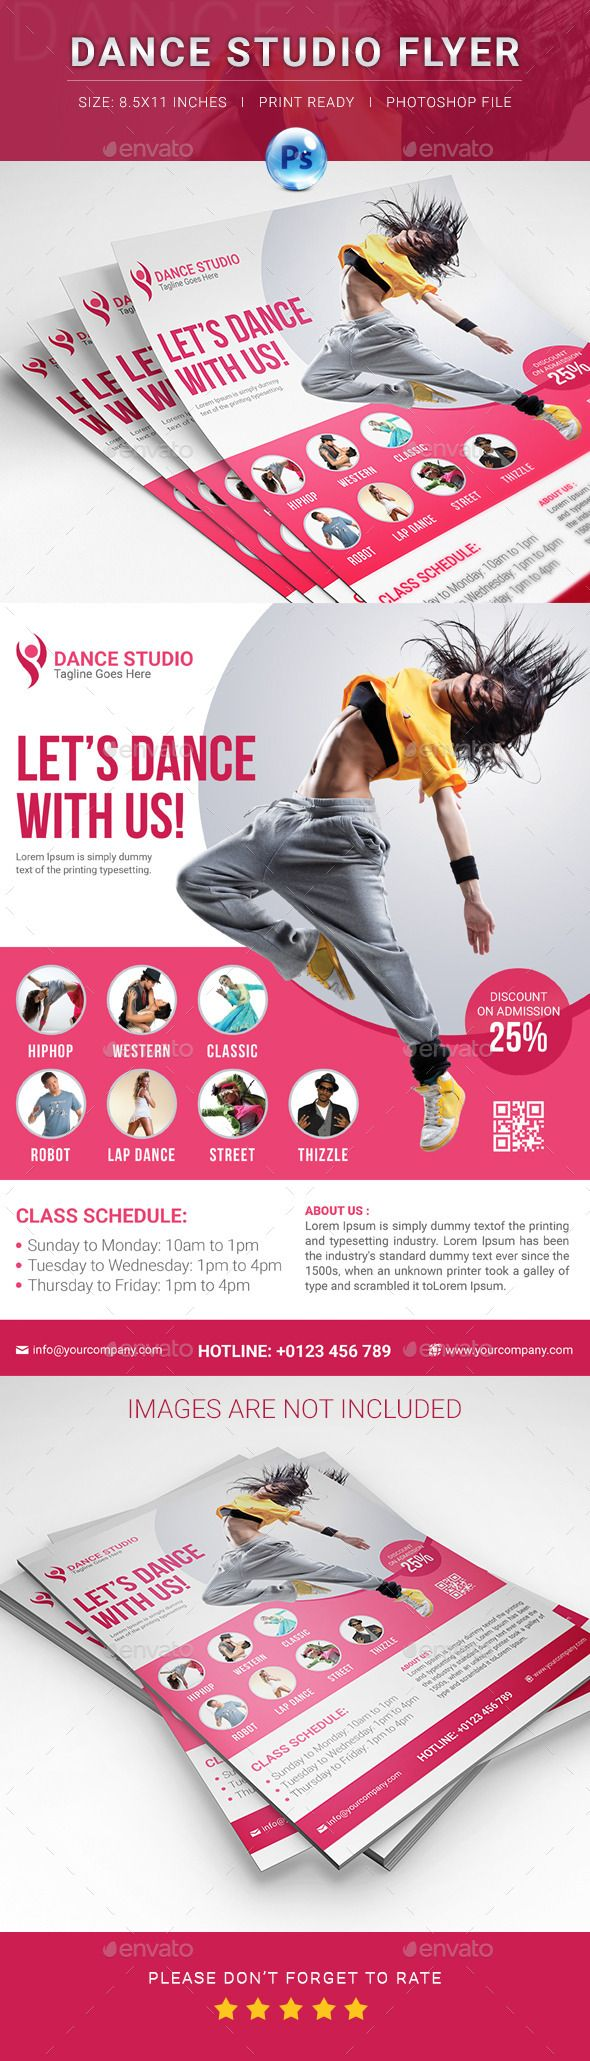 Dance Studio Flyer. Print-templates Flyers. For better visibility academy, advertising, artistic, brochure, business, corporate, dance, dance class, dance club, decorative, design, disco, event, event poster, fashion, flyer, institute, magazine, marketing, music, nightclub, party, poster, presentation, print, promotion flyer, school, and template.